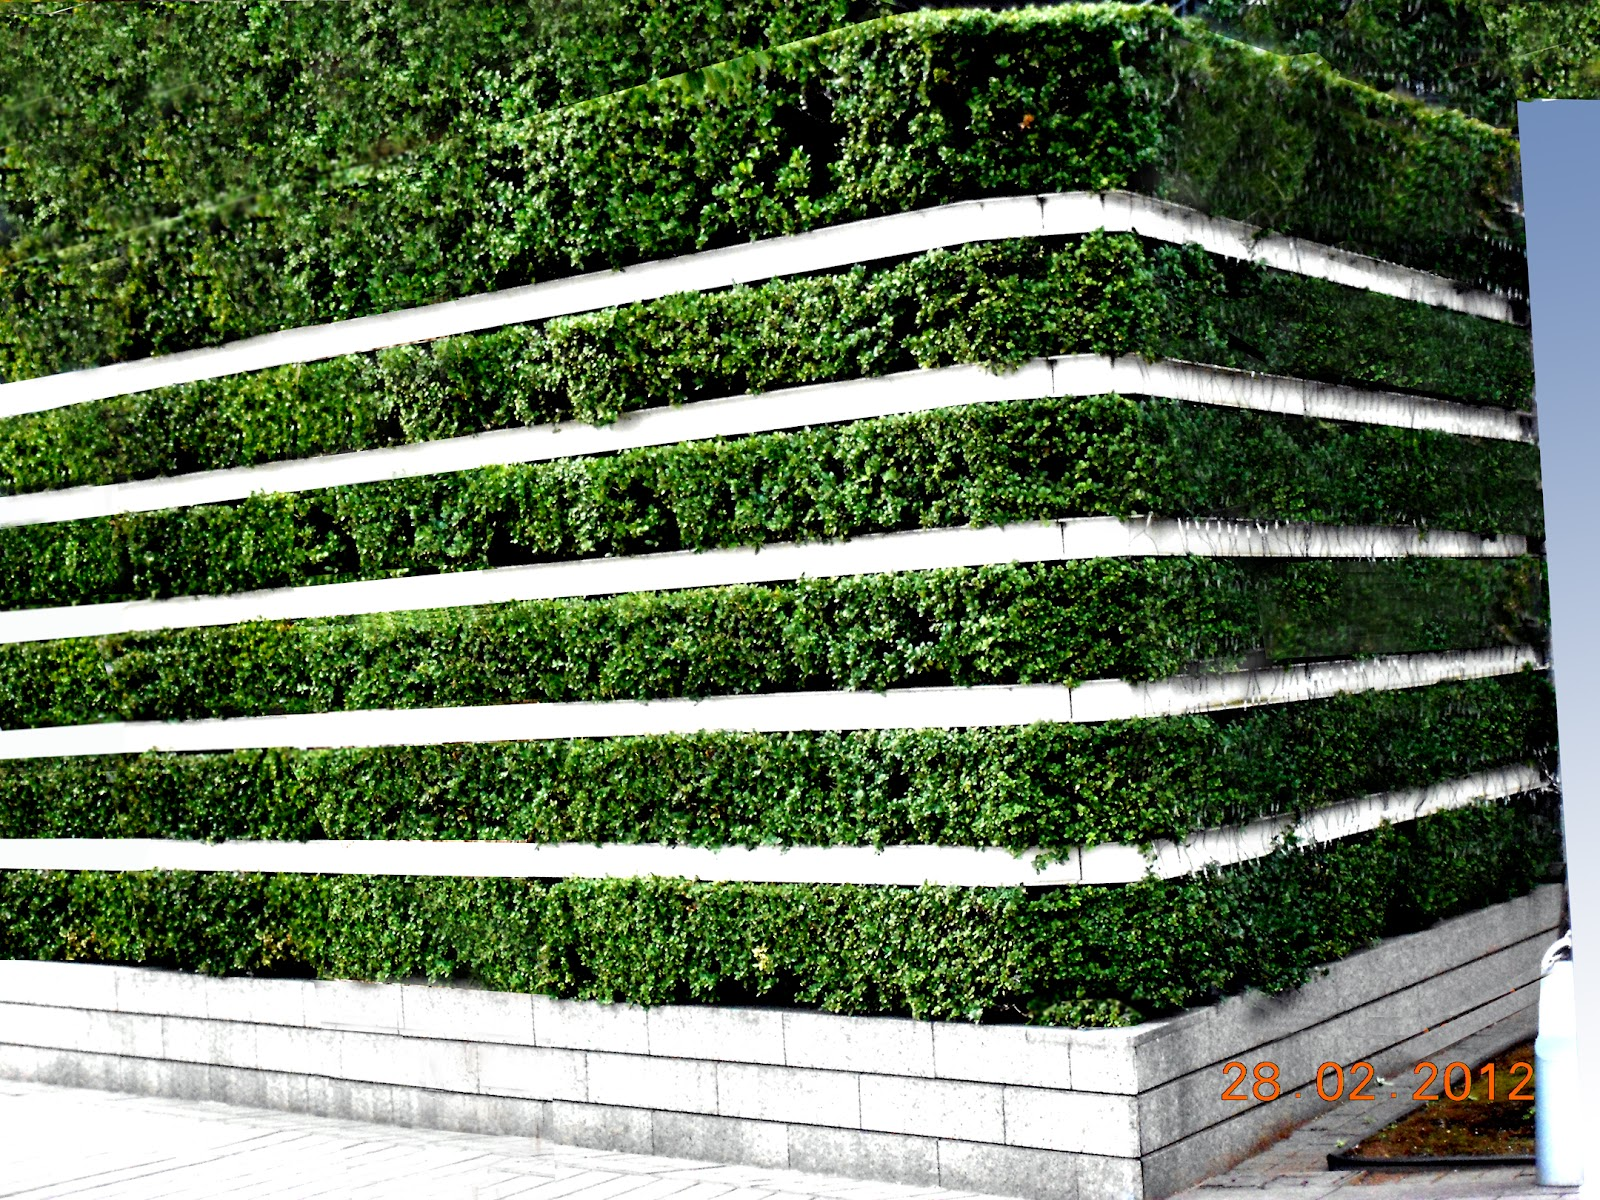 agro wall vertical garden planting system agro wall. Black Bedroom Furniture Sets. Home Design Ideas